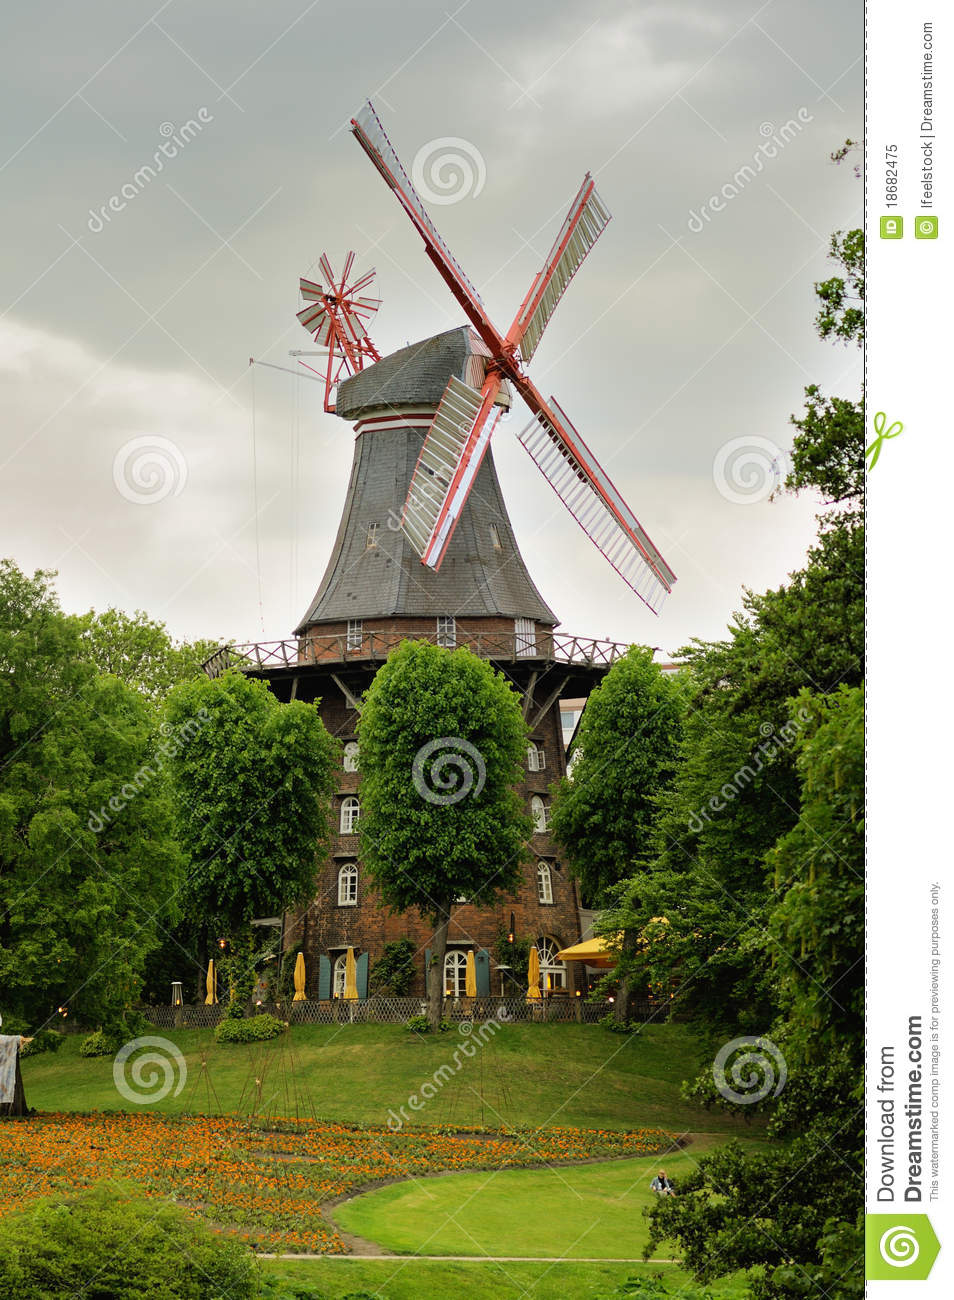 Windmill in bremen germany royalty free stock photo for 5 seasons designhotel bremen